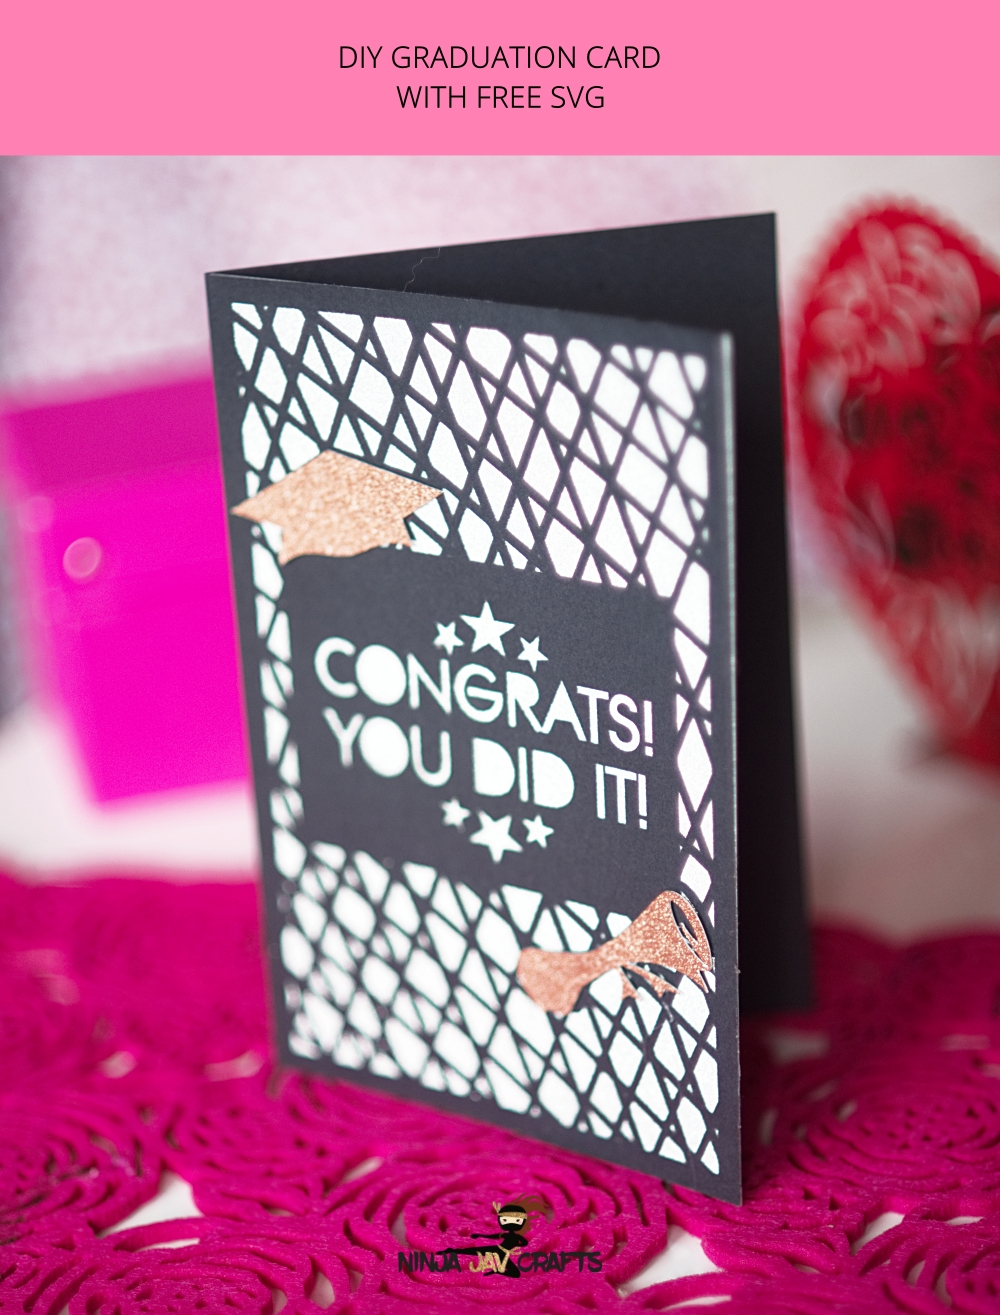 diy graduation card with gift card envelope. Free SVG. Perfect for beginners.